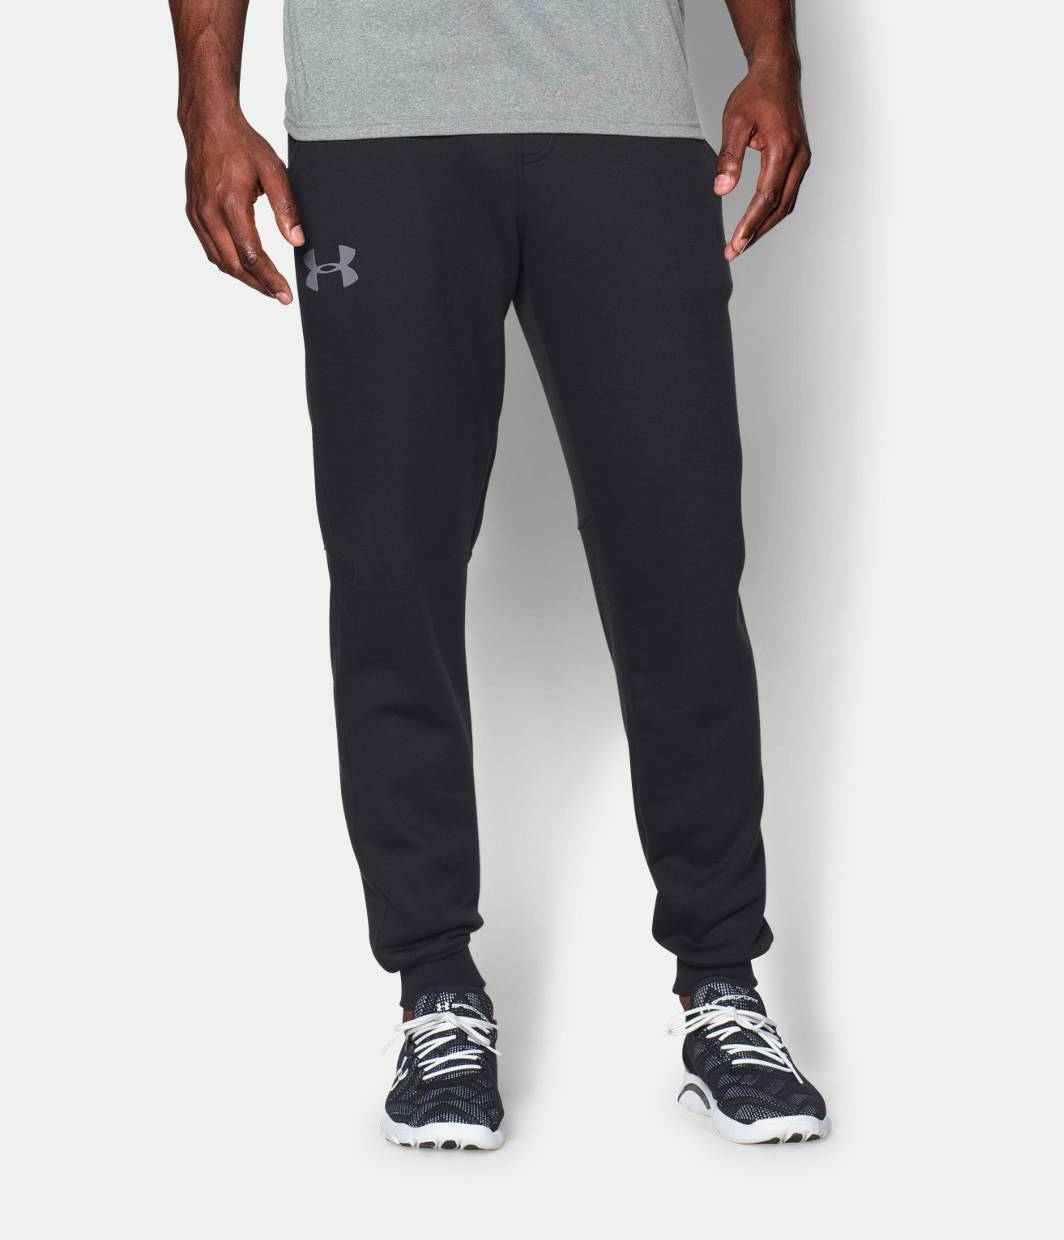 Under Armour Mens Time Travelin 2 Joggers Black Small